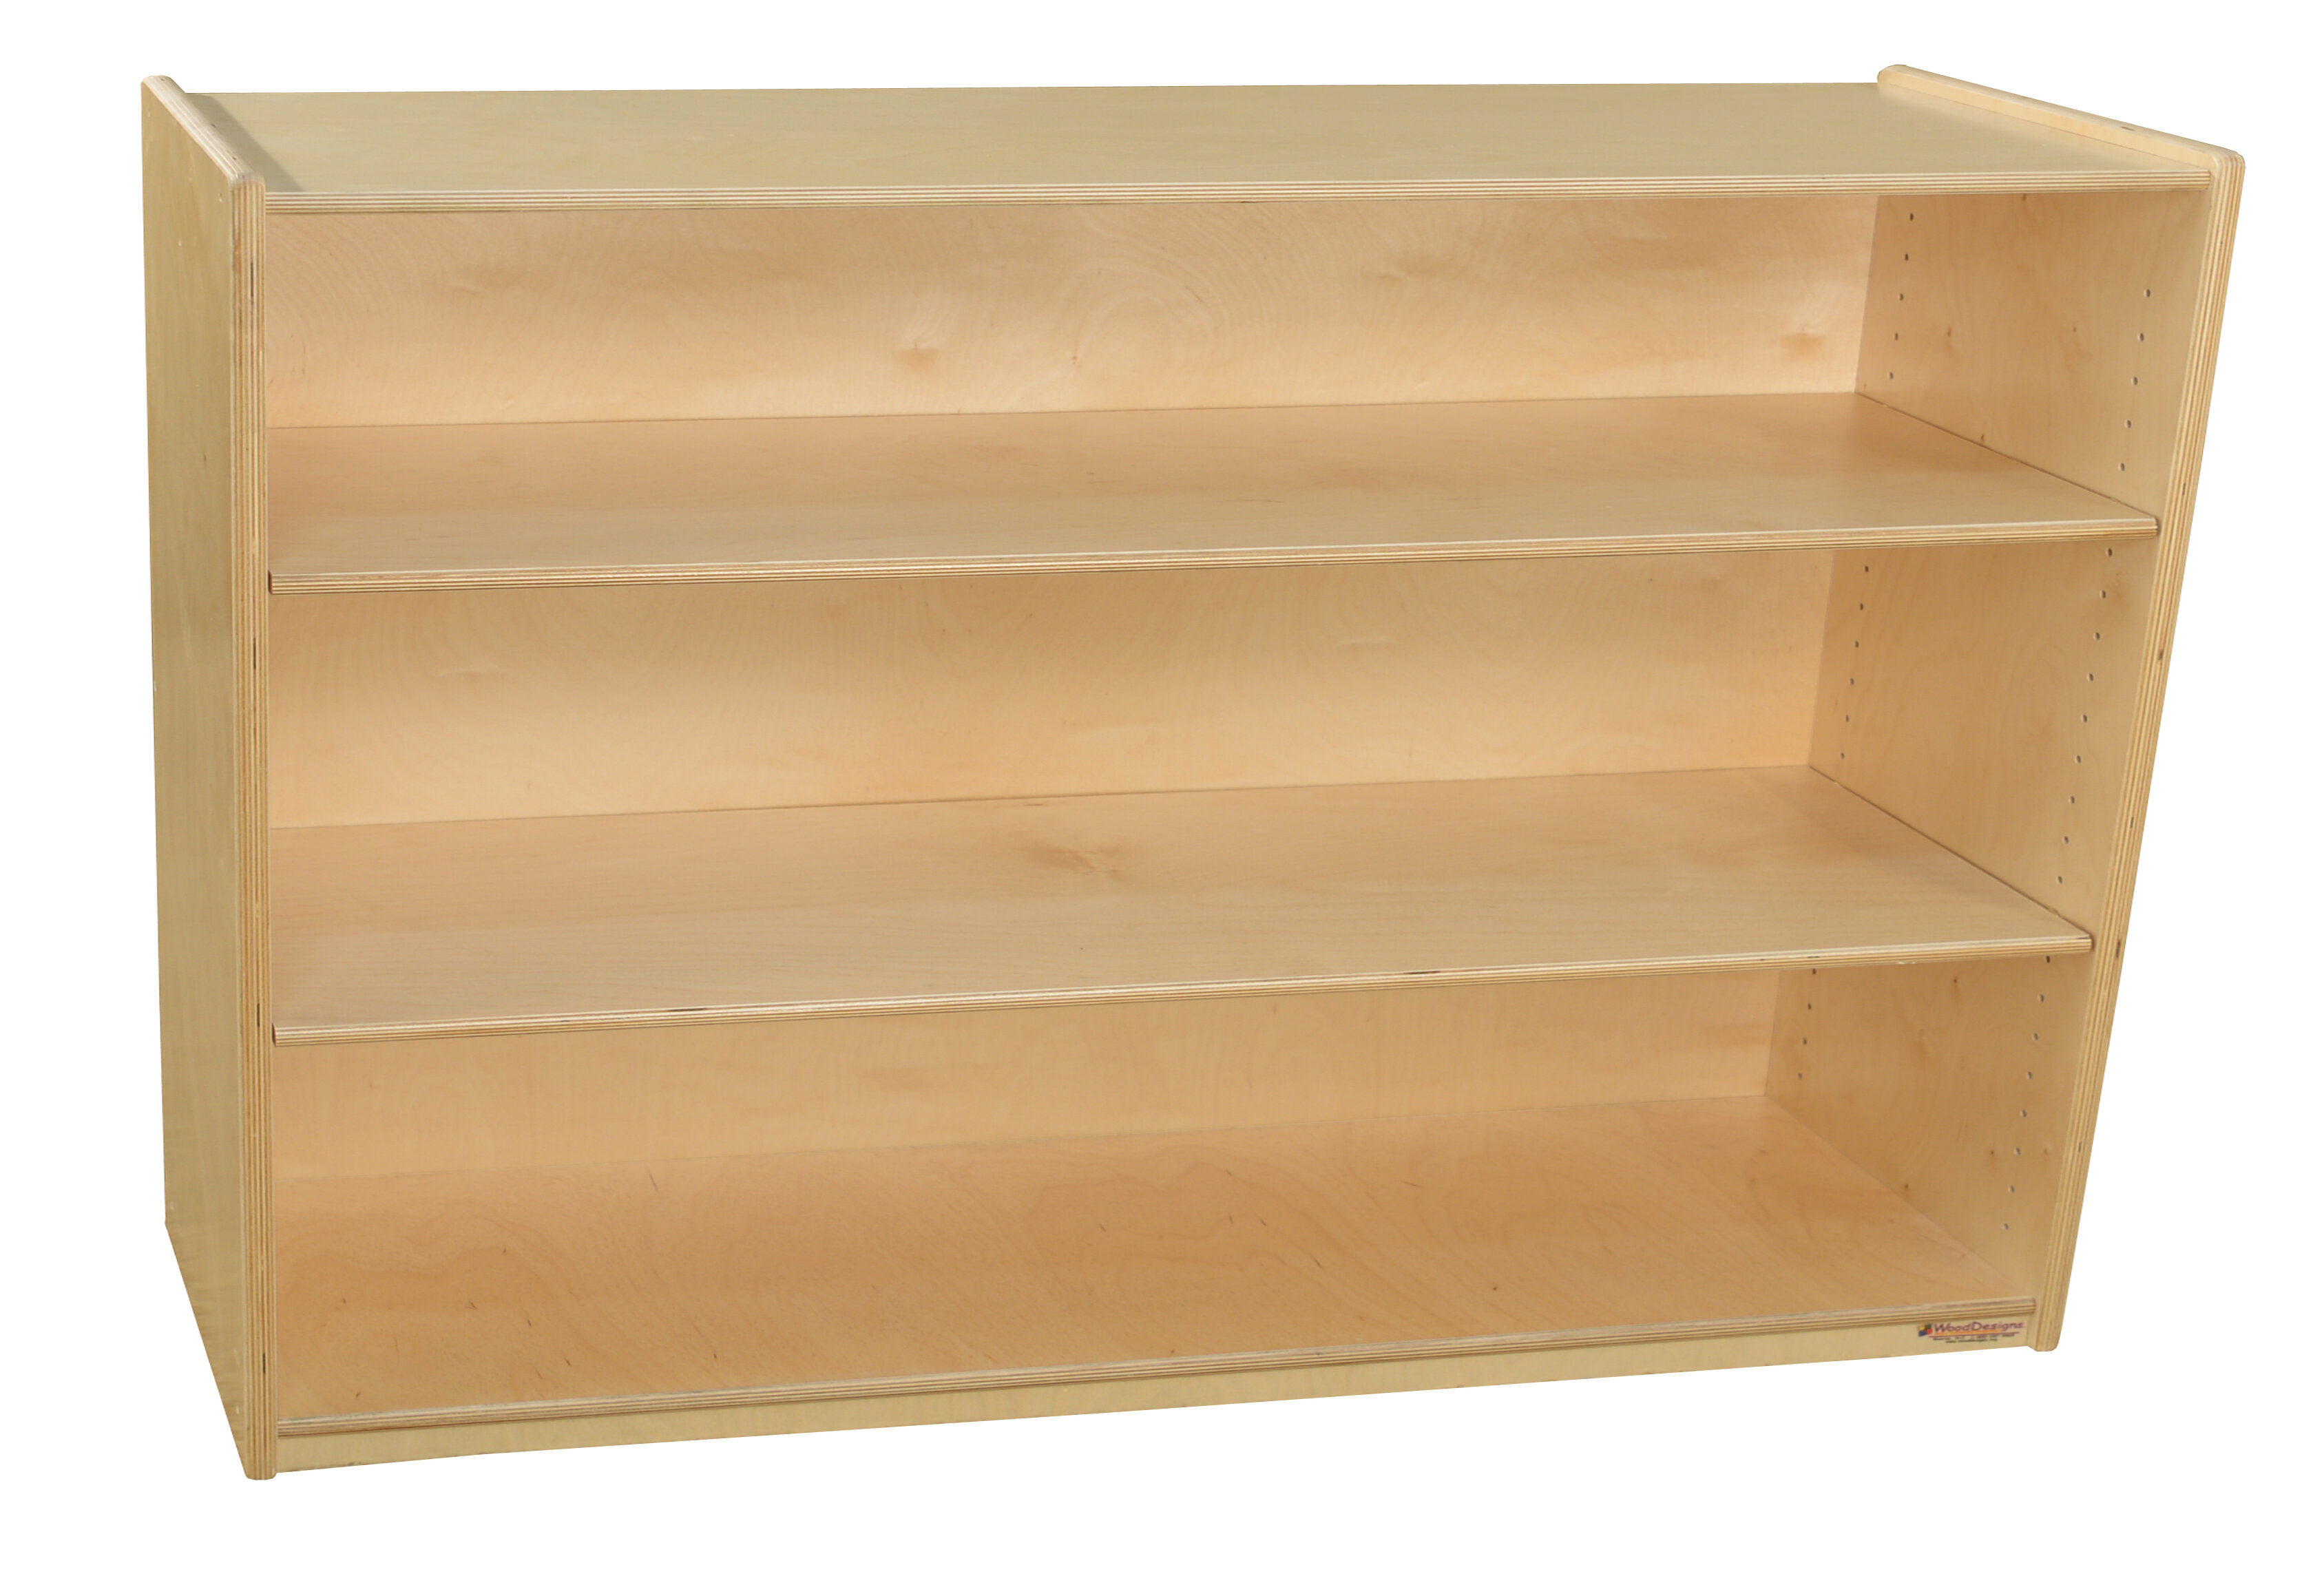 Wood Designs 3 Compartment Shelving